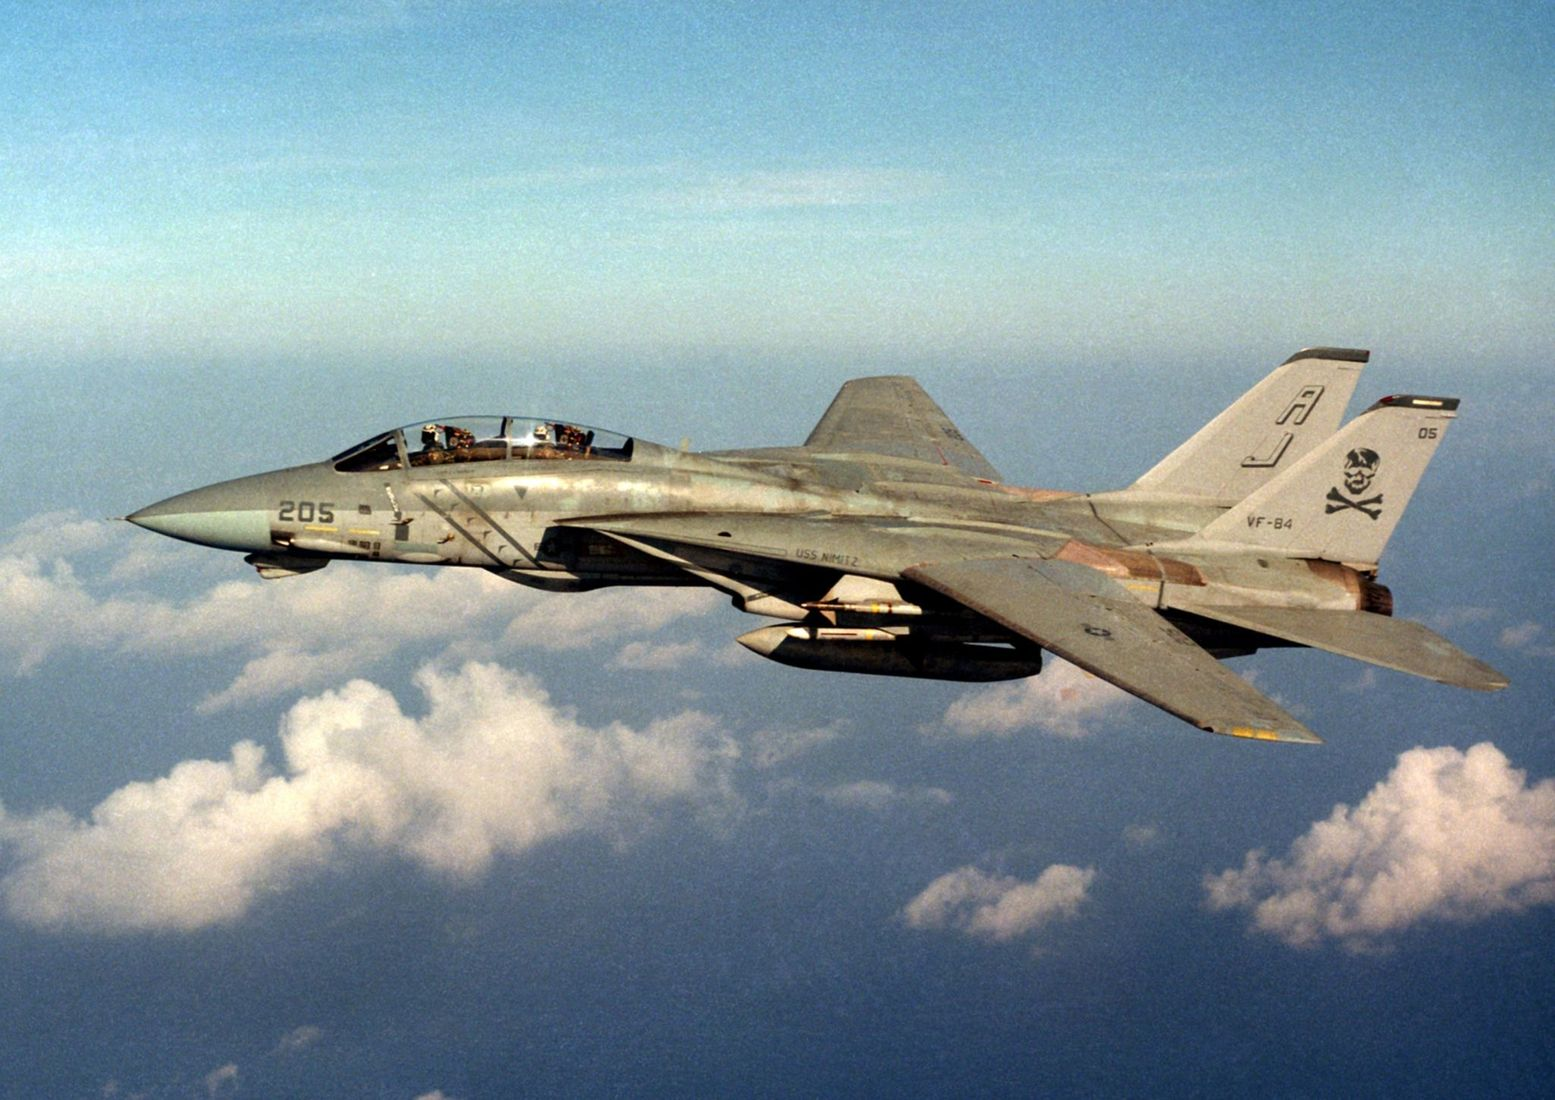 Iran Air Force Has Lost yet Another F-14A Tomcat Fighter Jet